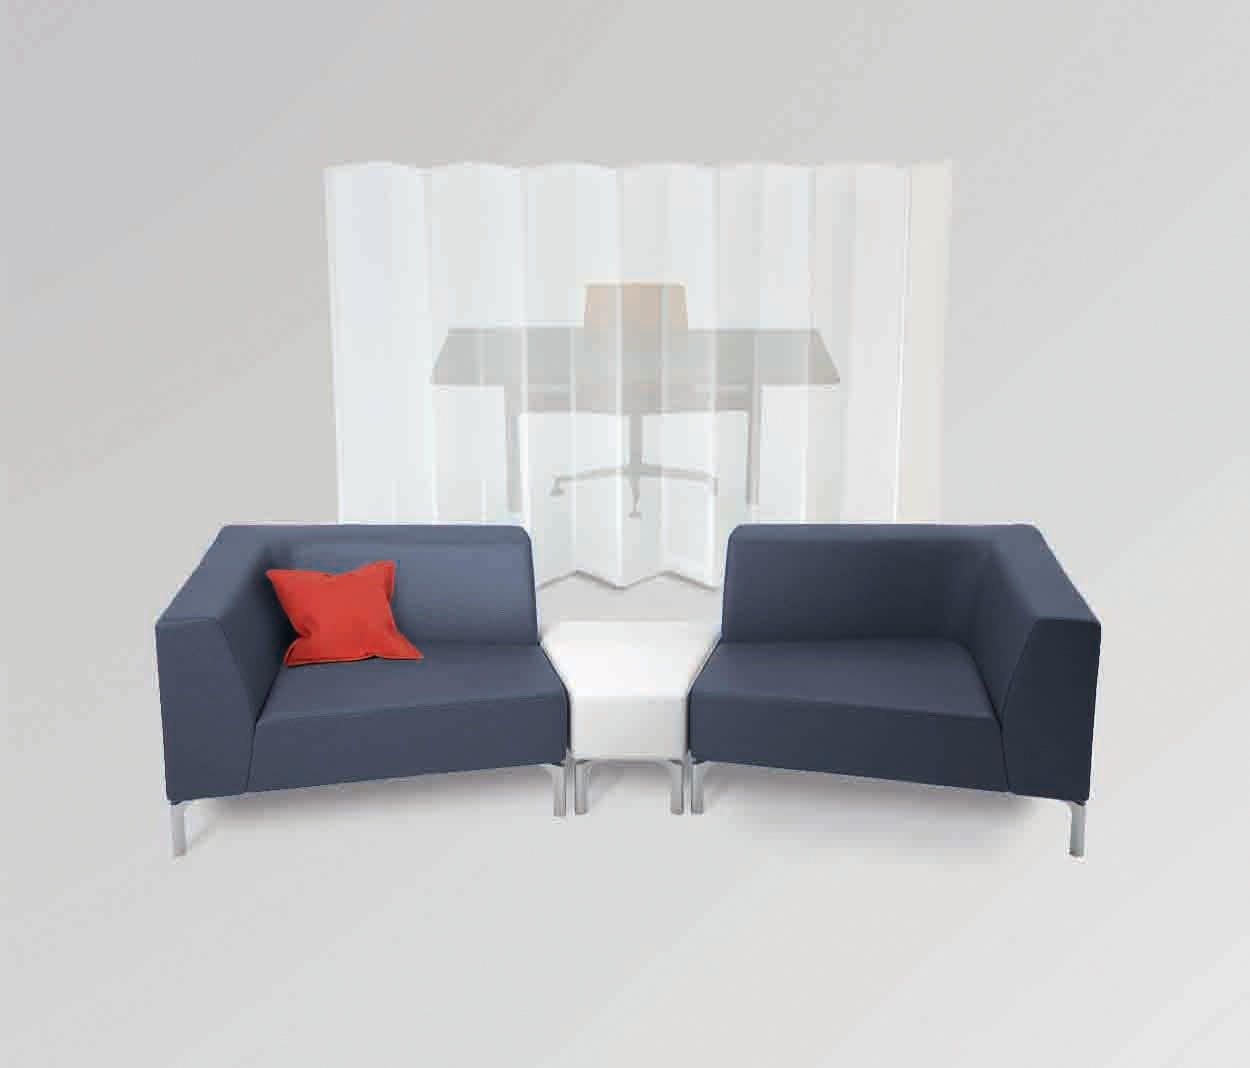 TANGRAMIS5 - Sofas from Interstuhl Büromöbel GmbH & Co. KG | Architonic